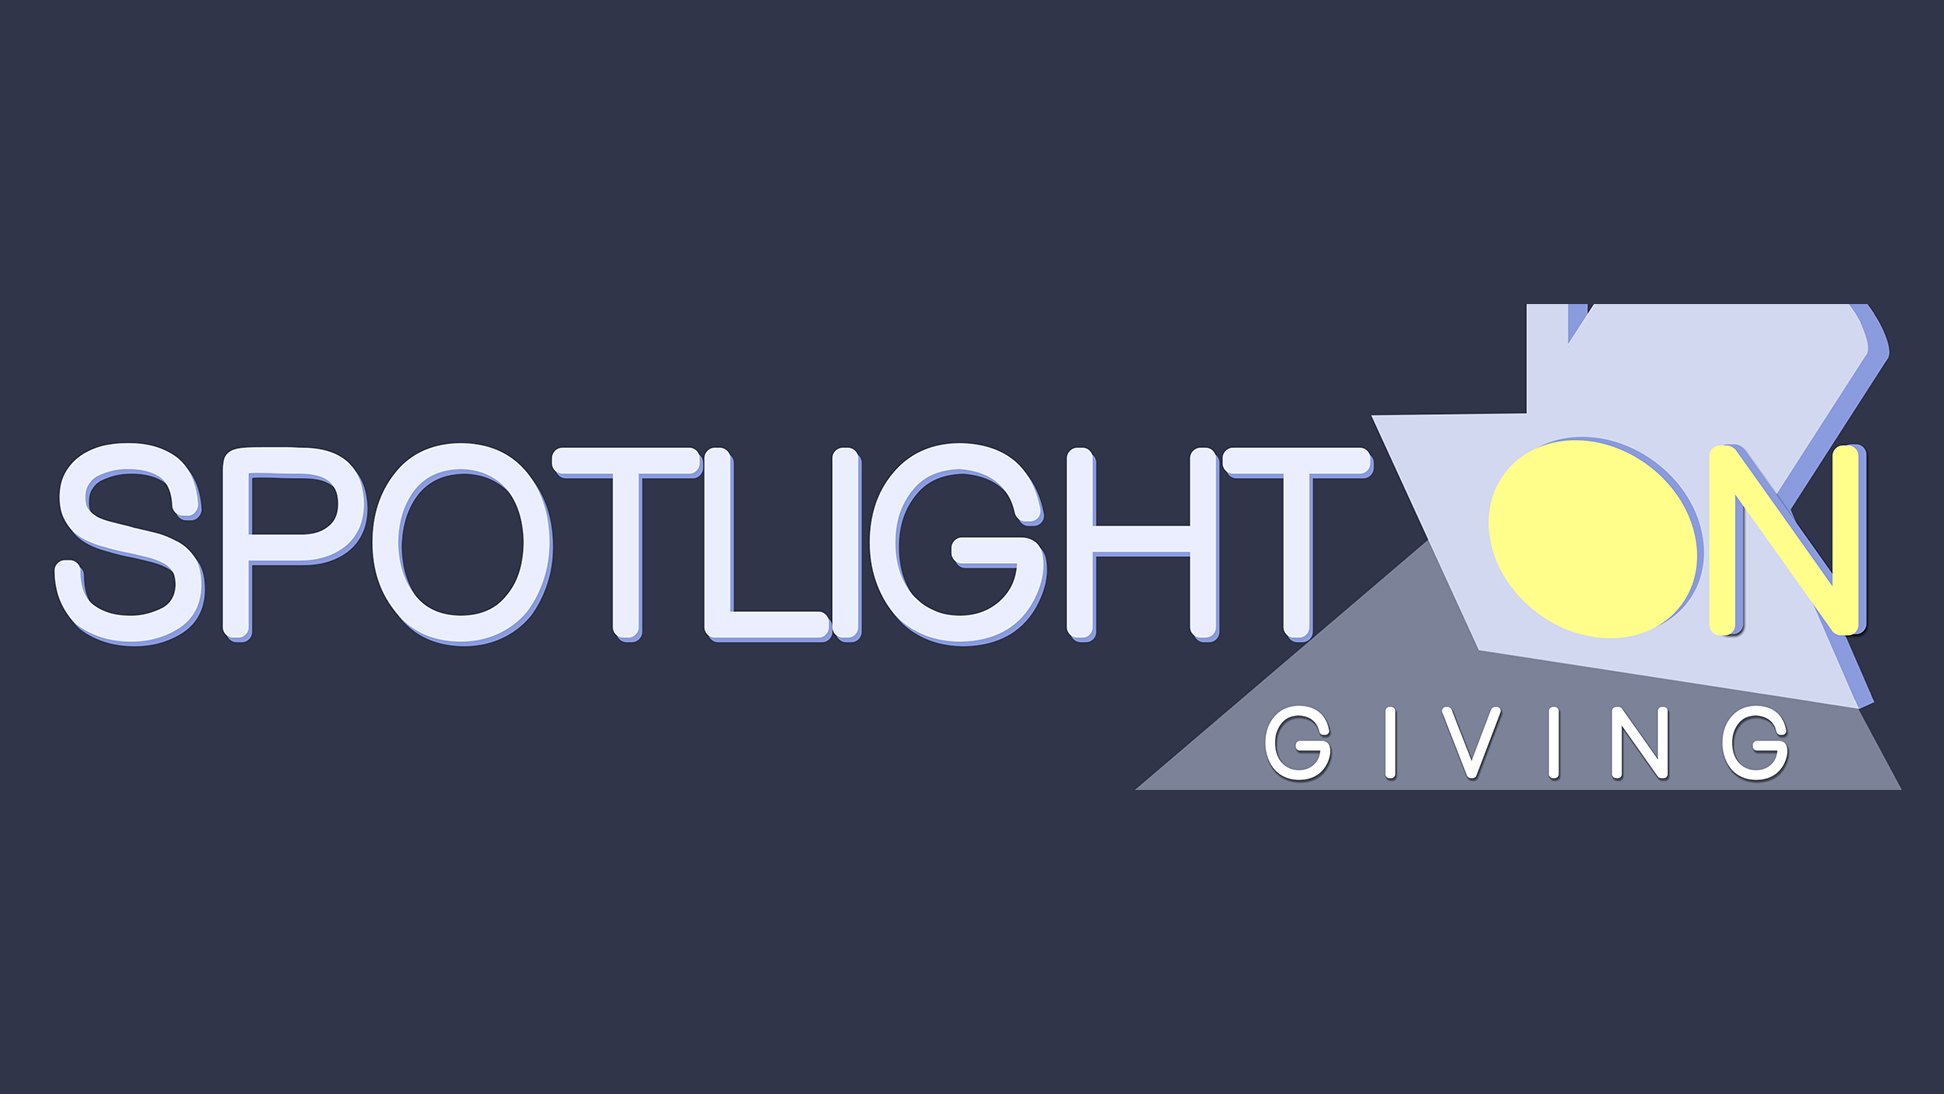 Spotlight On Giving